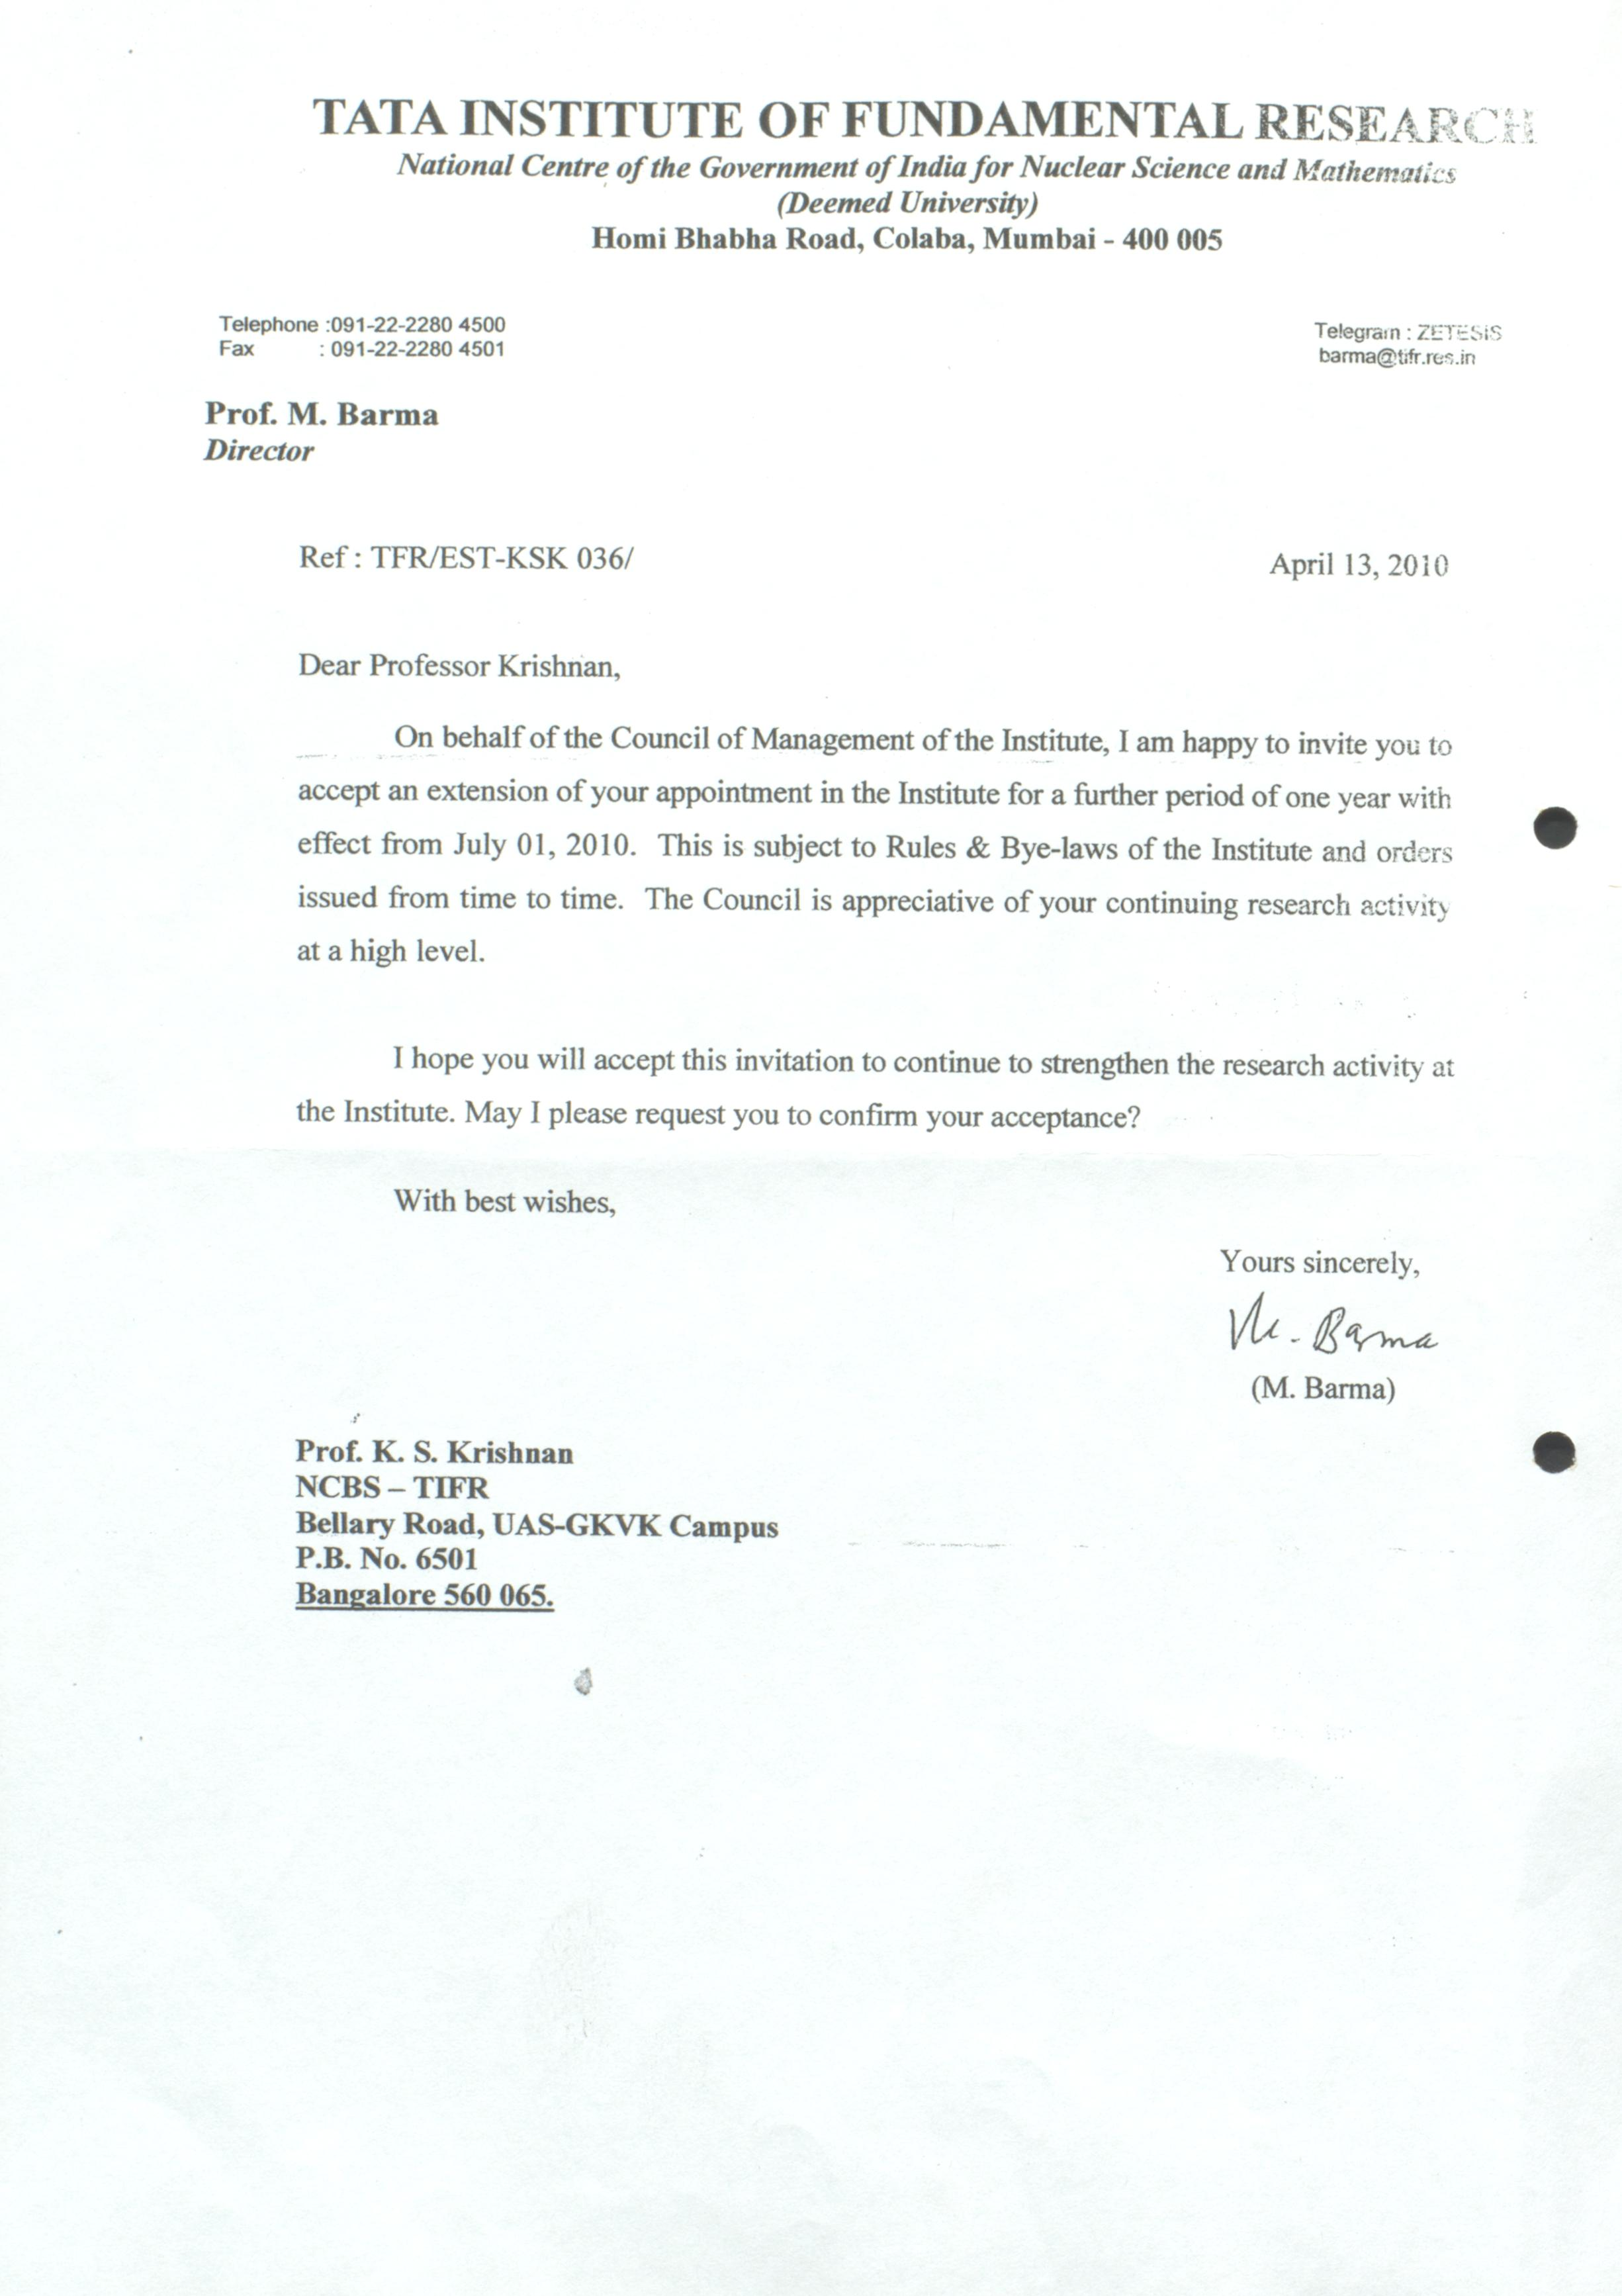 Letter from M  Barma (Director, TIFR) to K  S  Krishnan